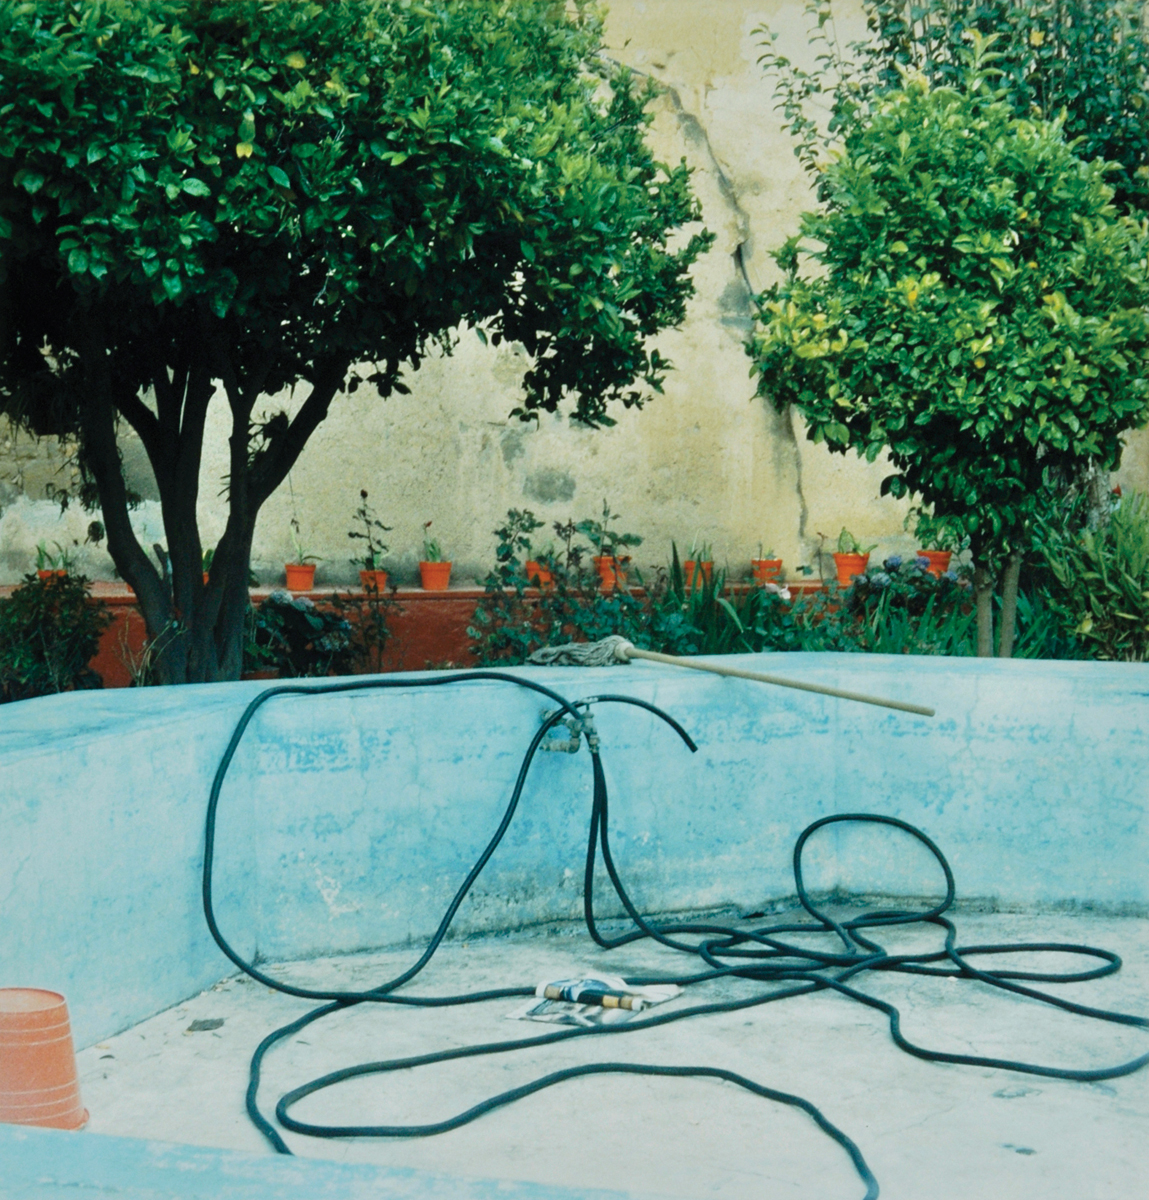 Amy Blakemore, Pool, 2012, chromogenic print, 12 x 12 inches